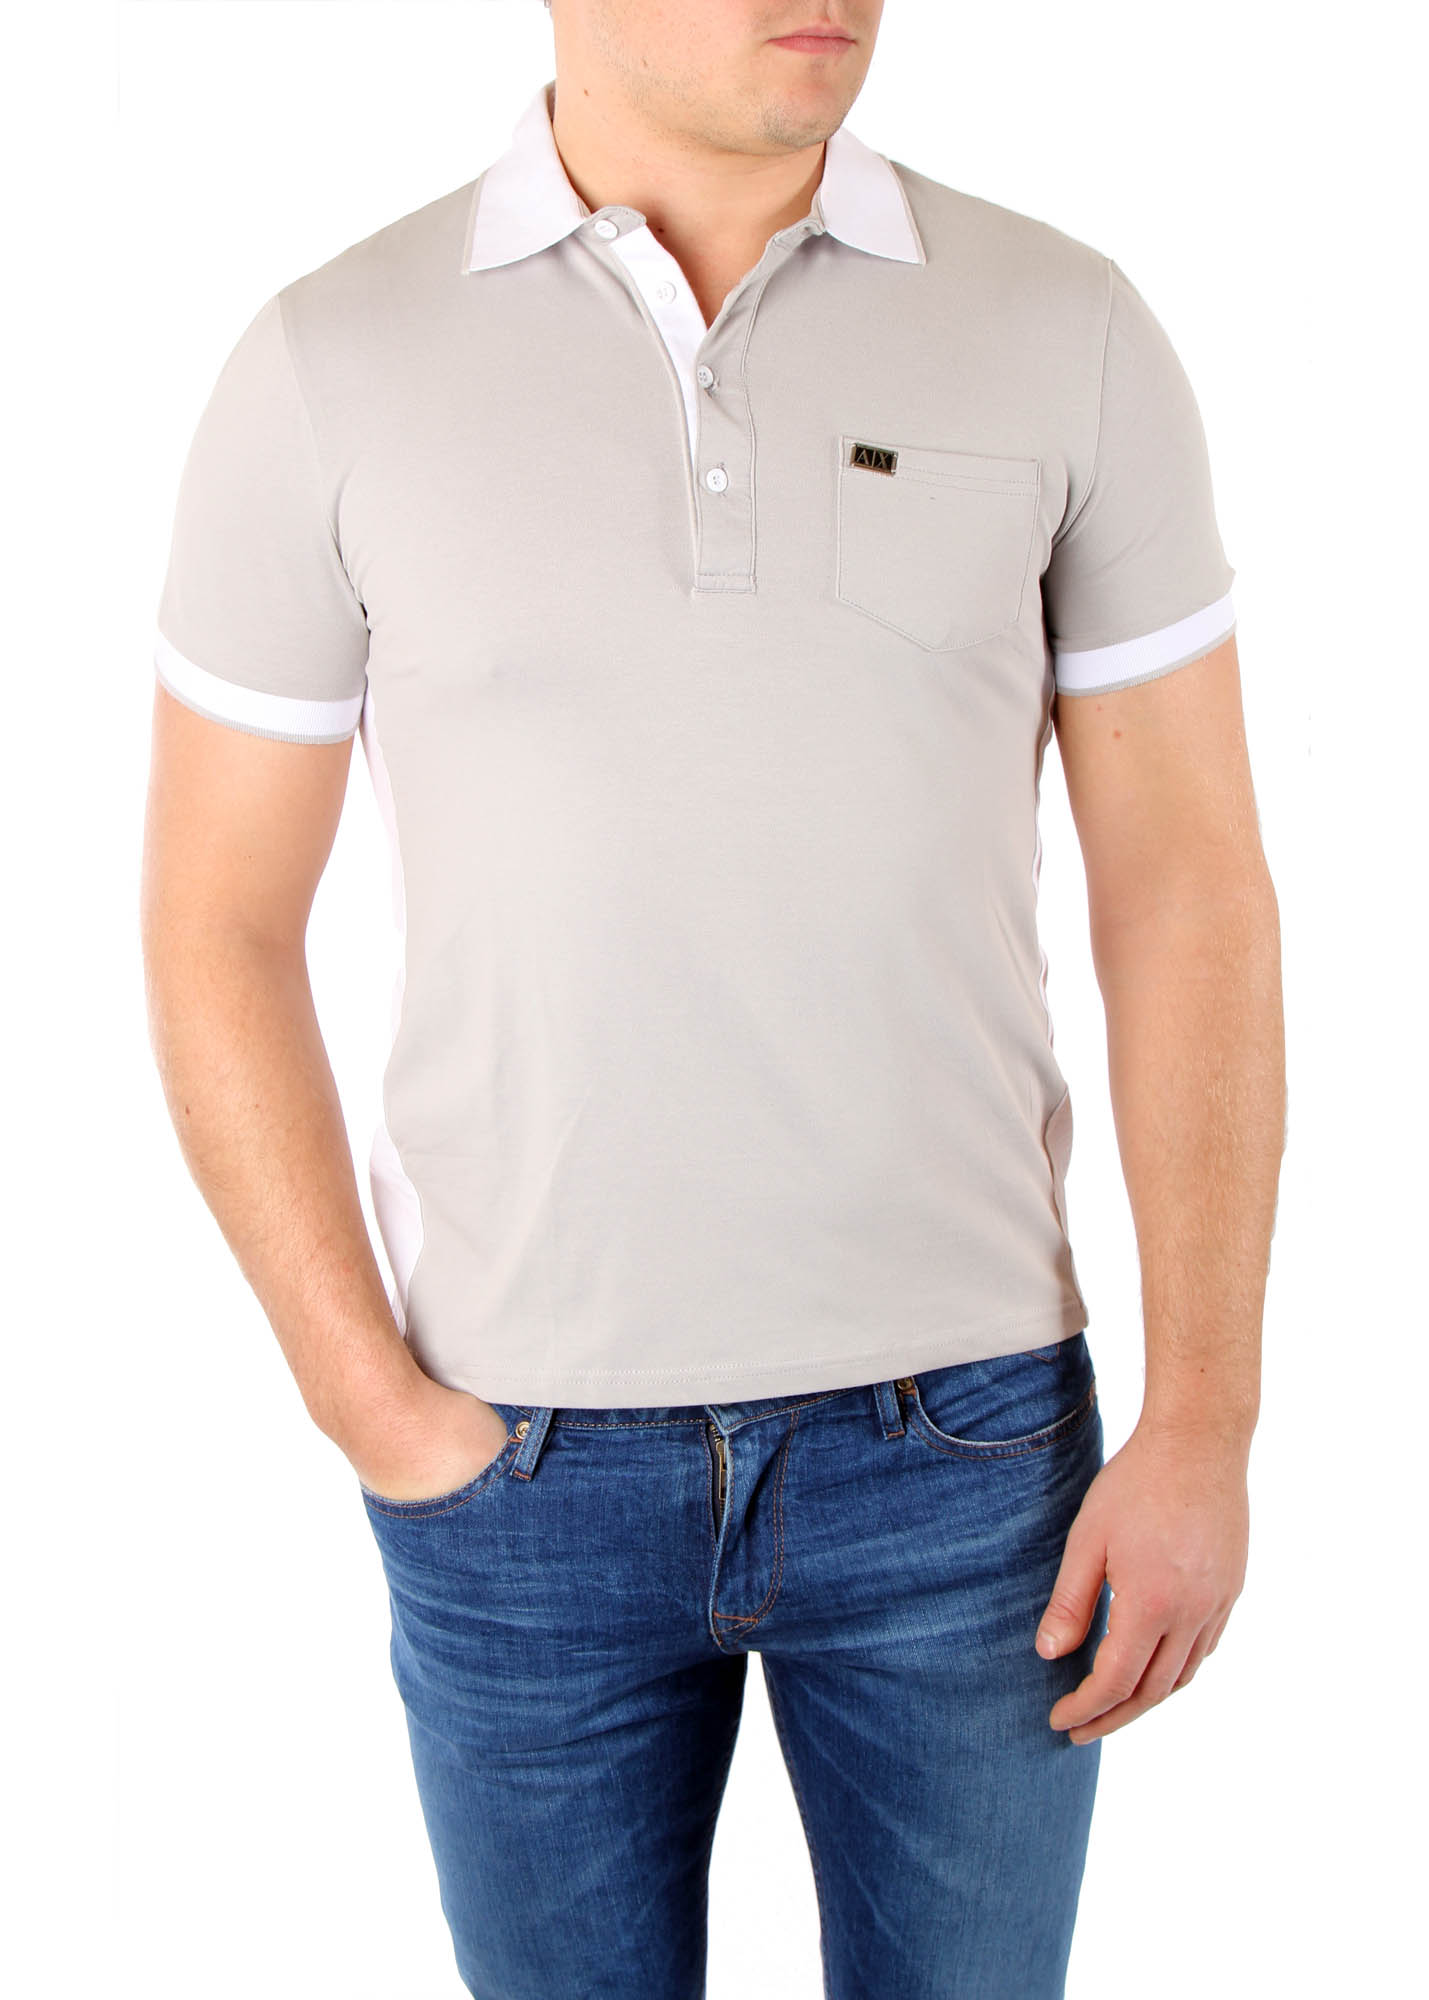 Polo t shirt clothing store kokos for Armani exchange t shirts wholesale